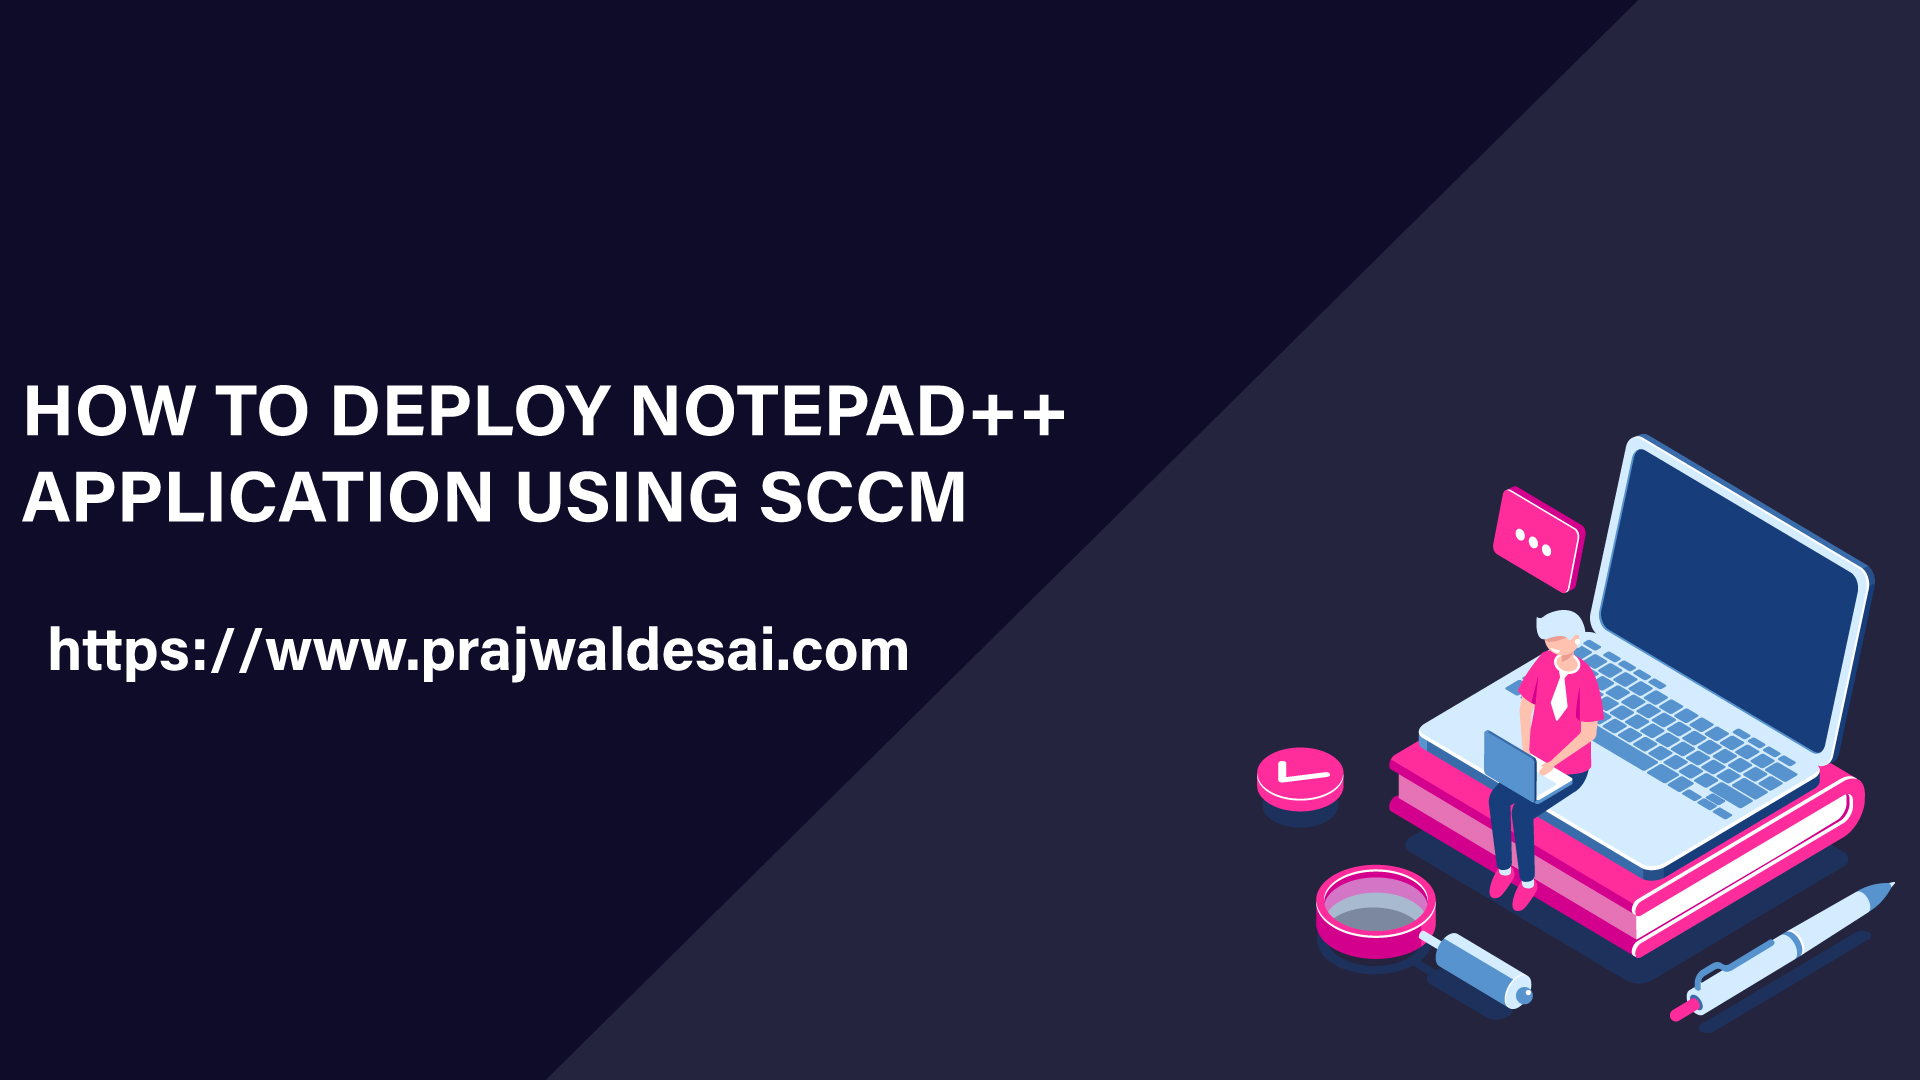 How to deploy Notepad++ Application using SCCM